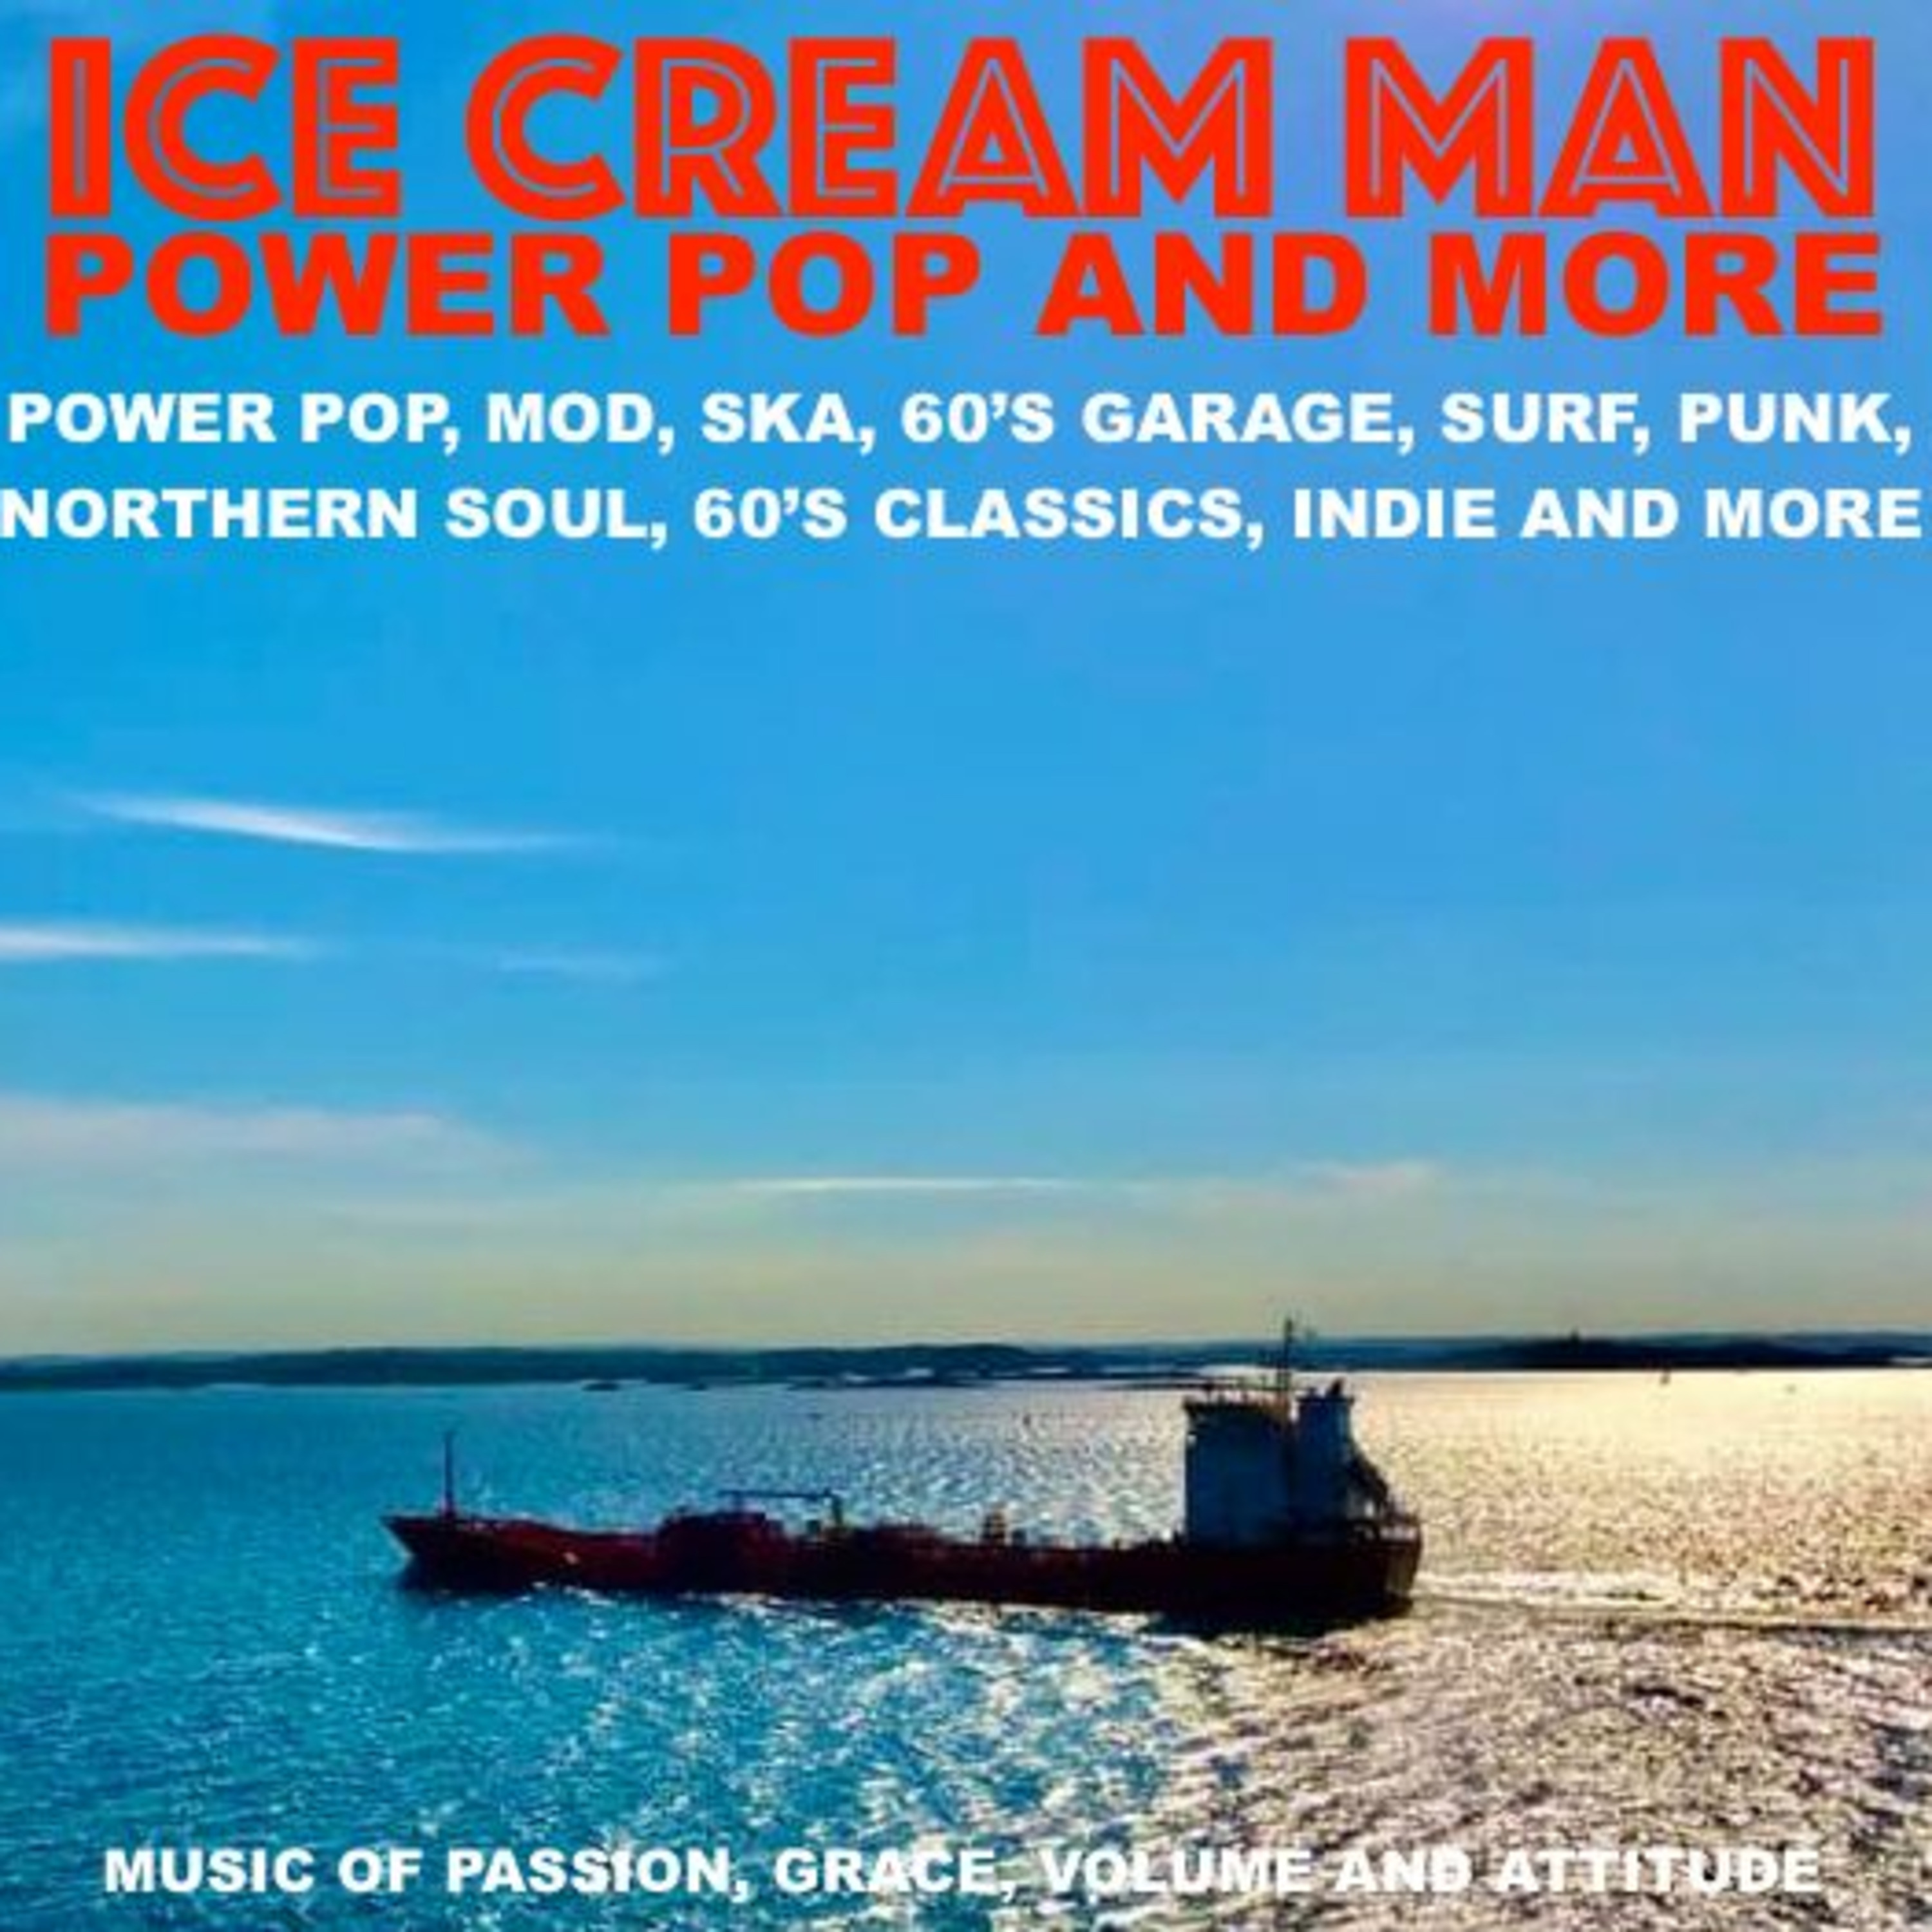 Ice Cream Man Power Pop and More #353